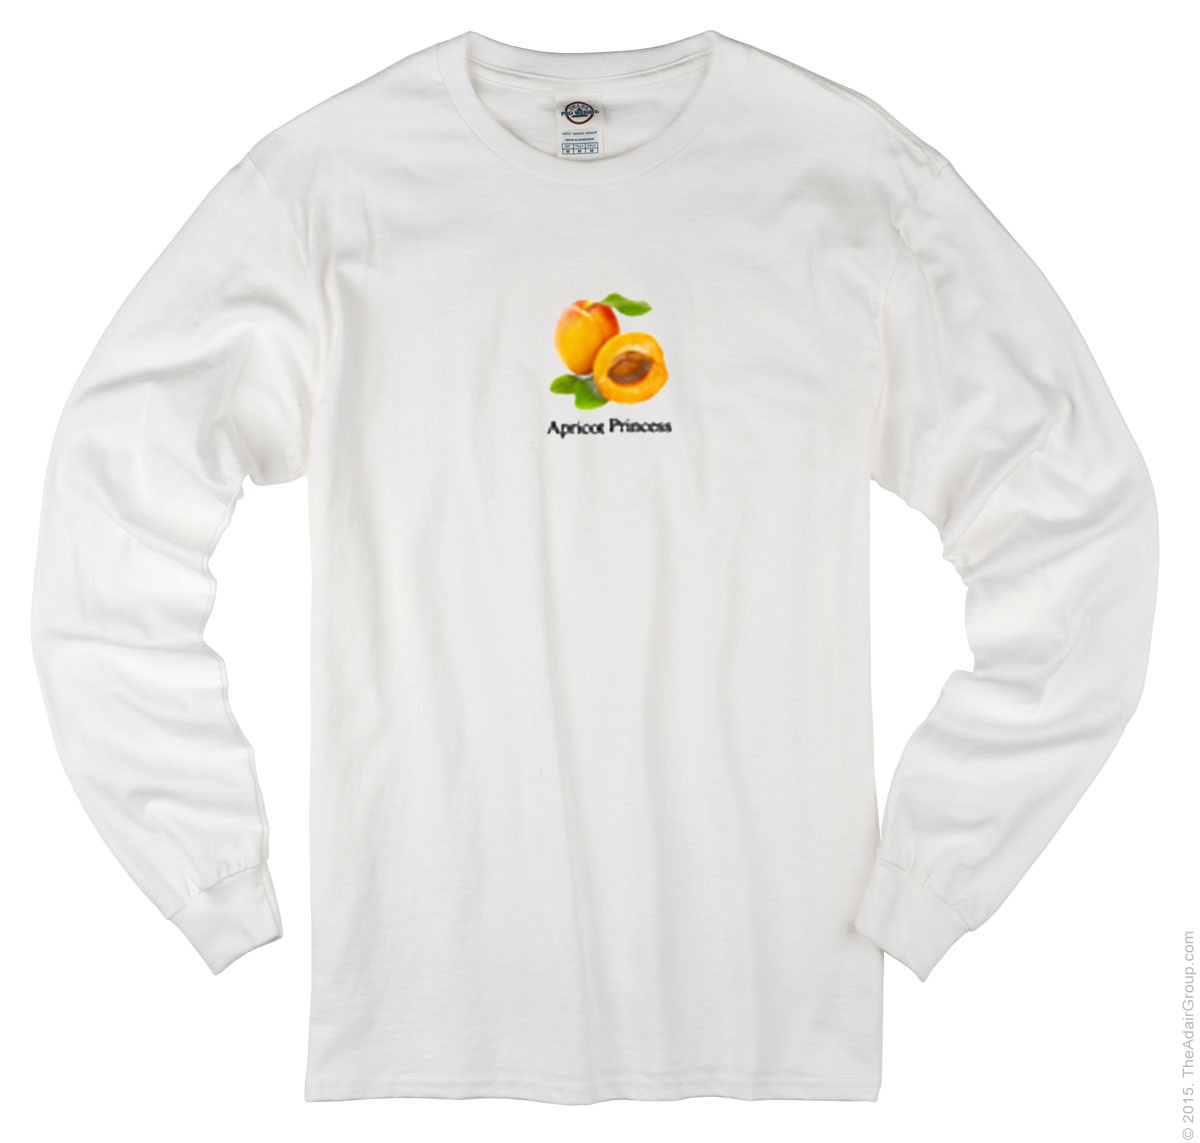 Apricot Princess Long Sleeve White T-shirt